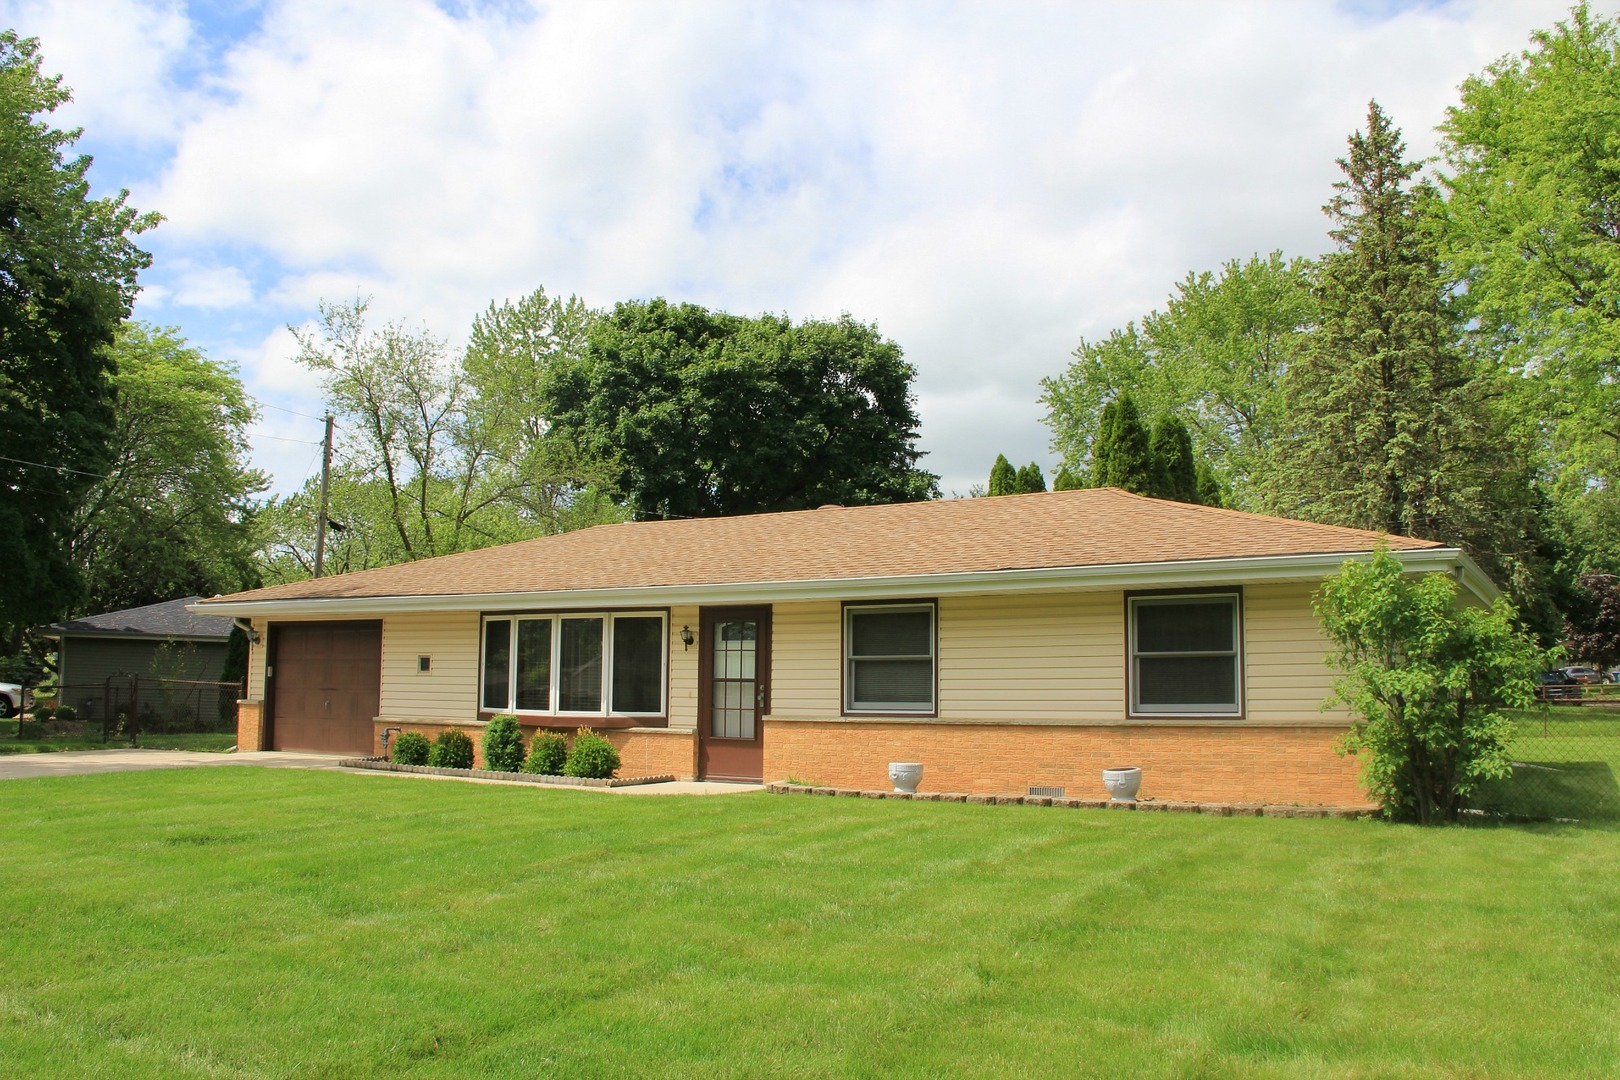 Photo for 1748 Pleasant Avenue, ST. CHARLES, IL 60174 (MLS # 10436413)